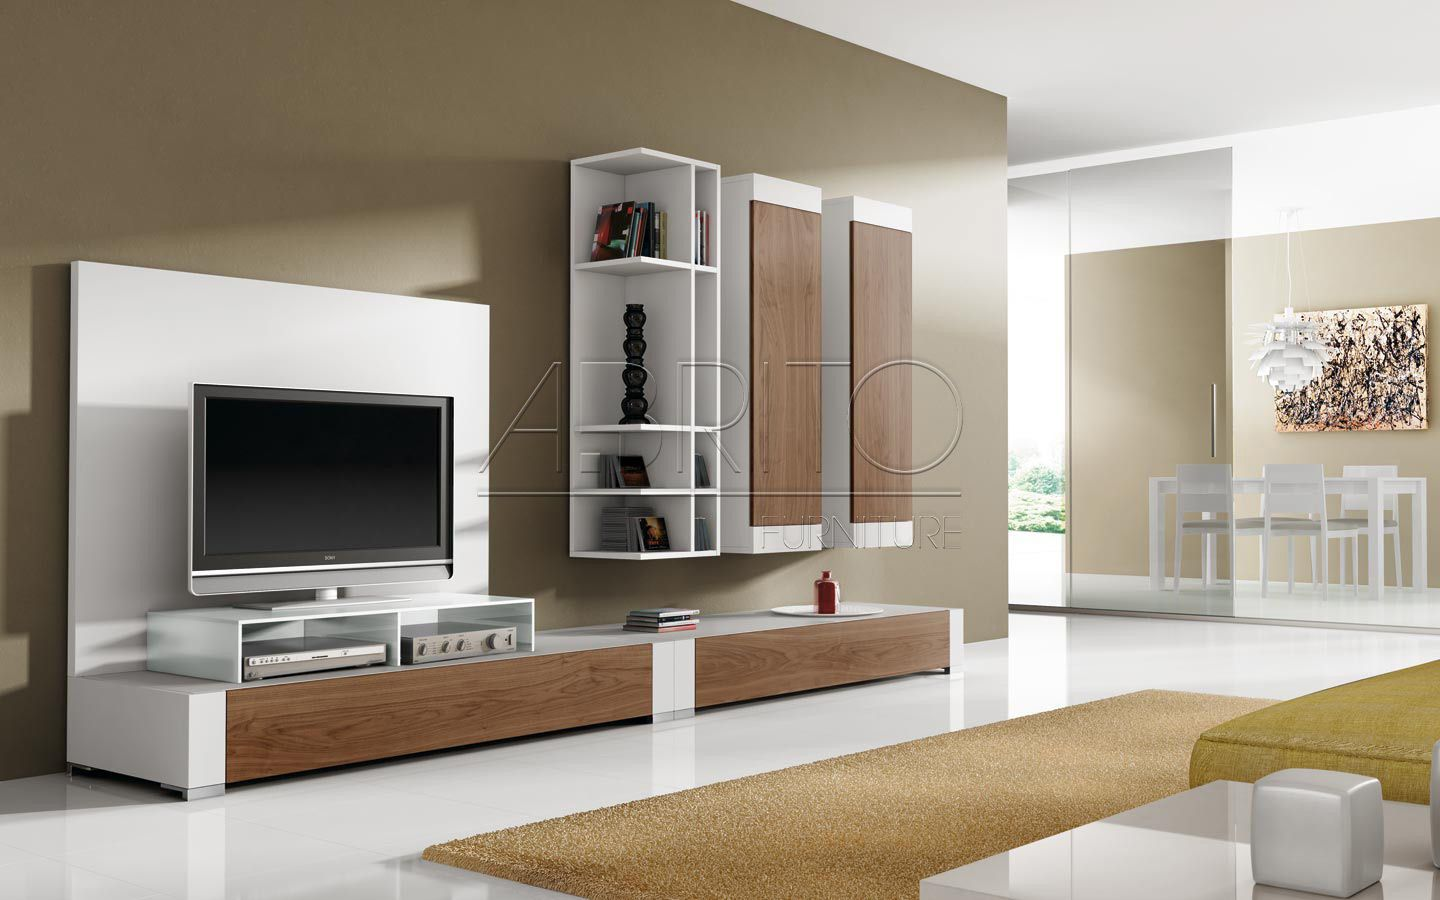 Modern tv wall units images spaces pinterest tv - Wall units for living room mumbai ...